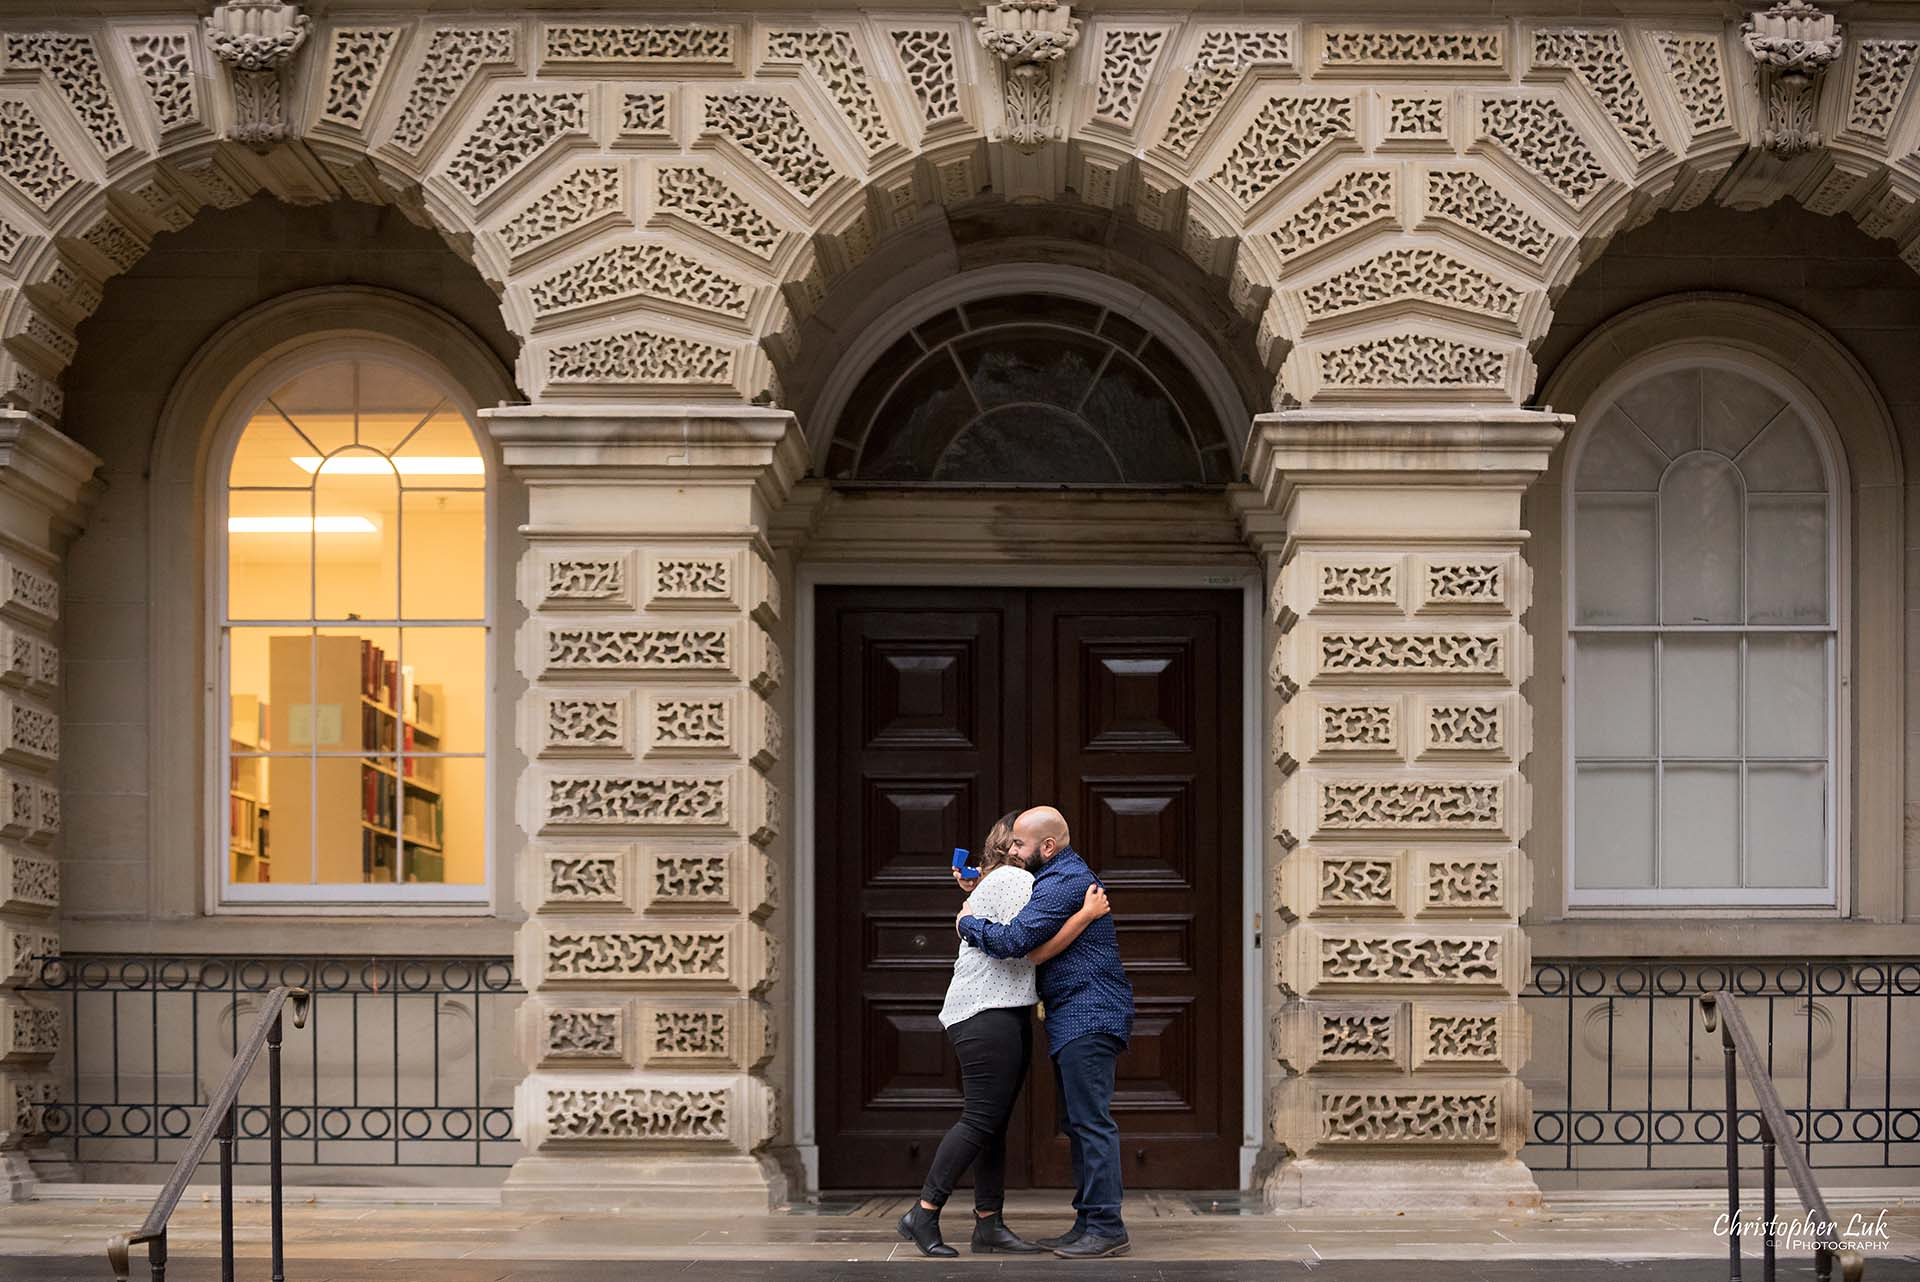 Christopher Luk Toronto Wedding Photographer - Toronto Osgoode Hall Surprise Proposal Engaged Engagement Will You Marry Me She Said Yes Natural Candid Photojournalistic - Fiancé Fiancée Bride Groom Ring Hug